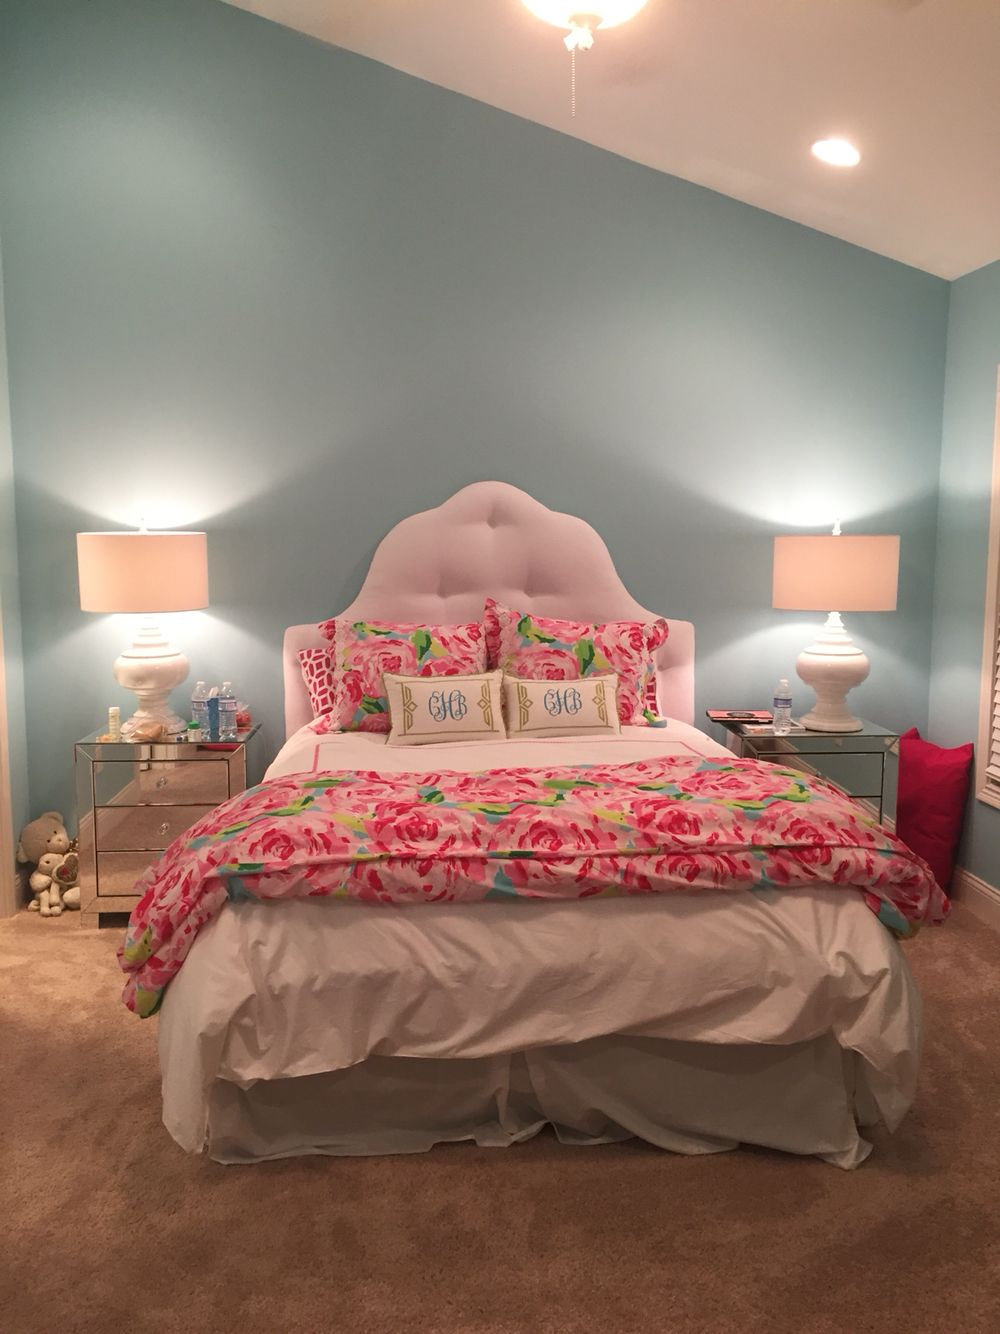 Himalayan Salt Lamp Bed Bath And Beyond Alluring Lilly Pulitzer And Pottery Barn Teen Comforter With Monogrammed Design Inspiration